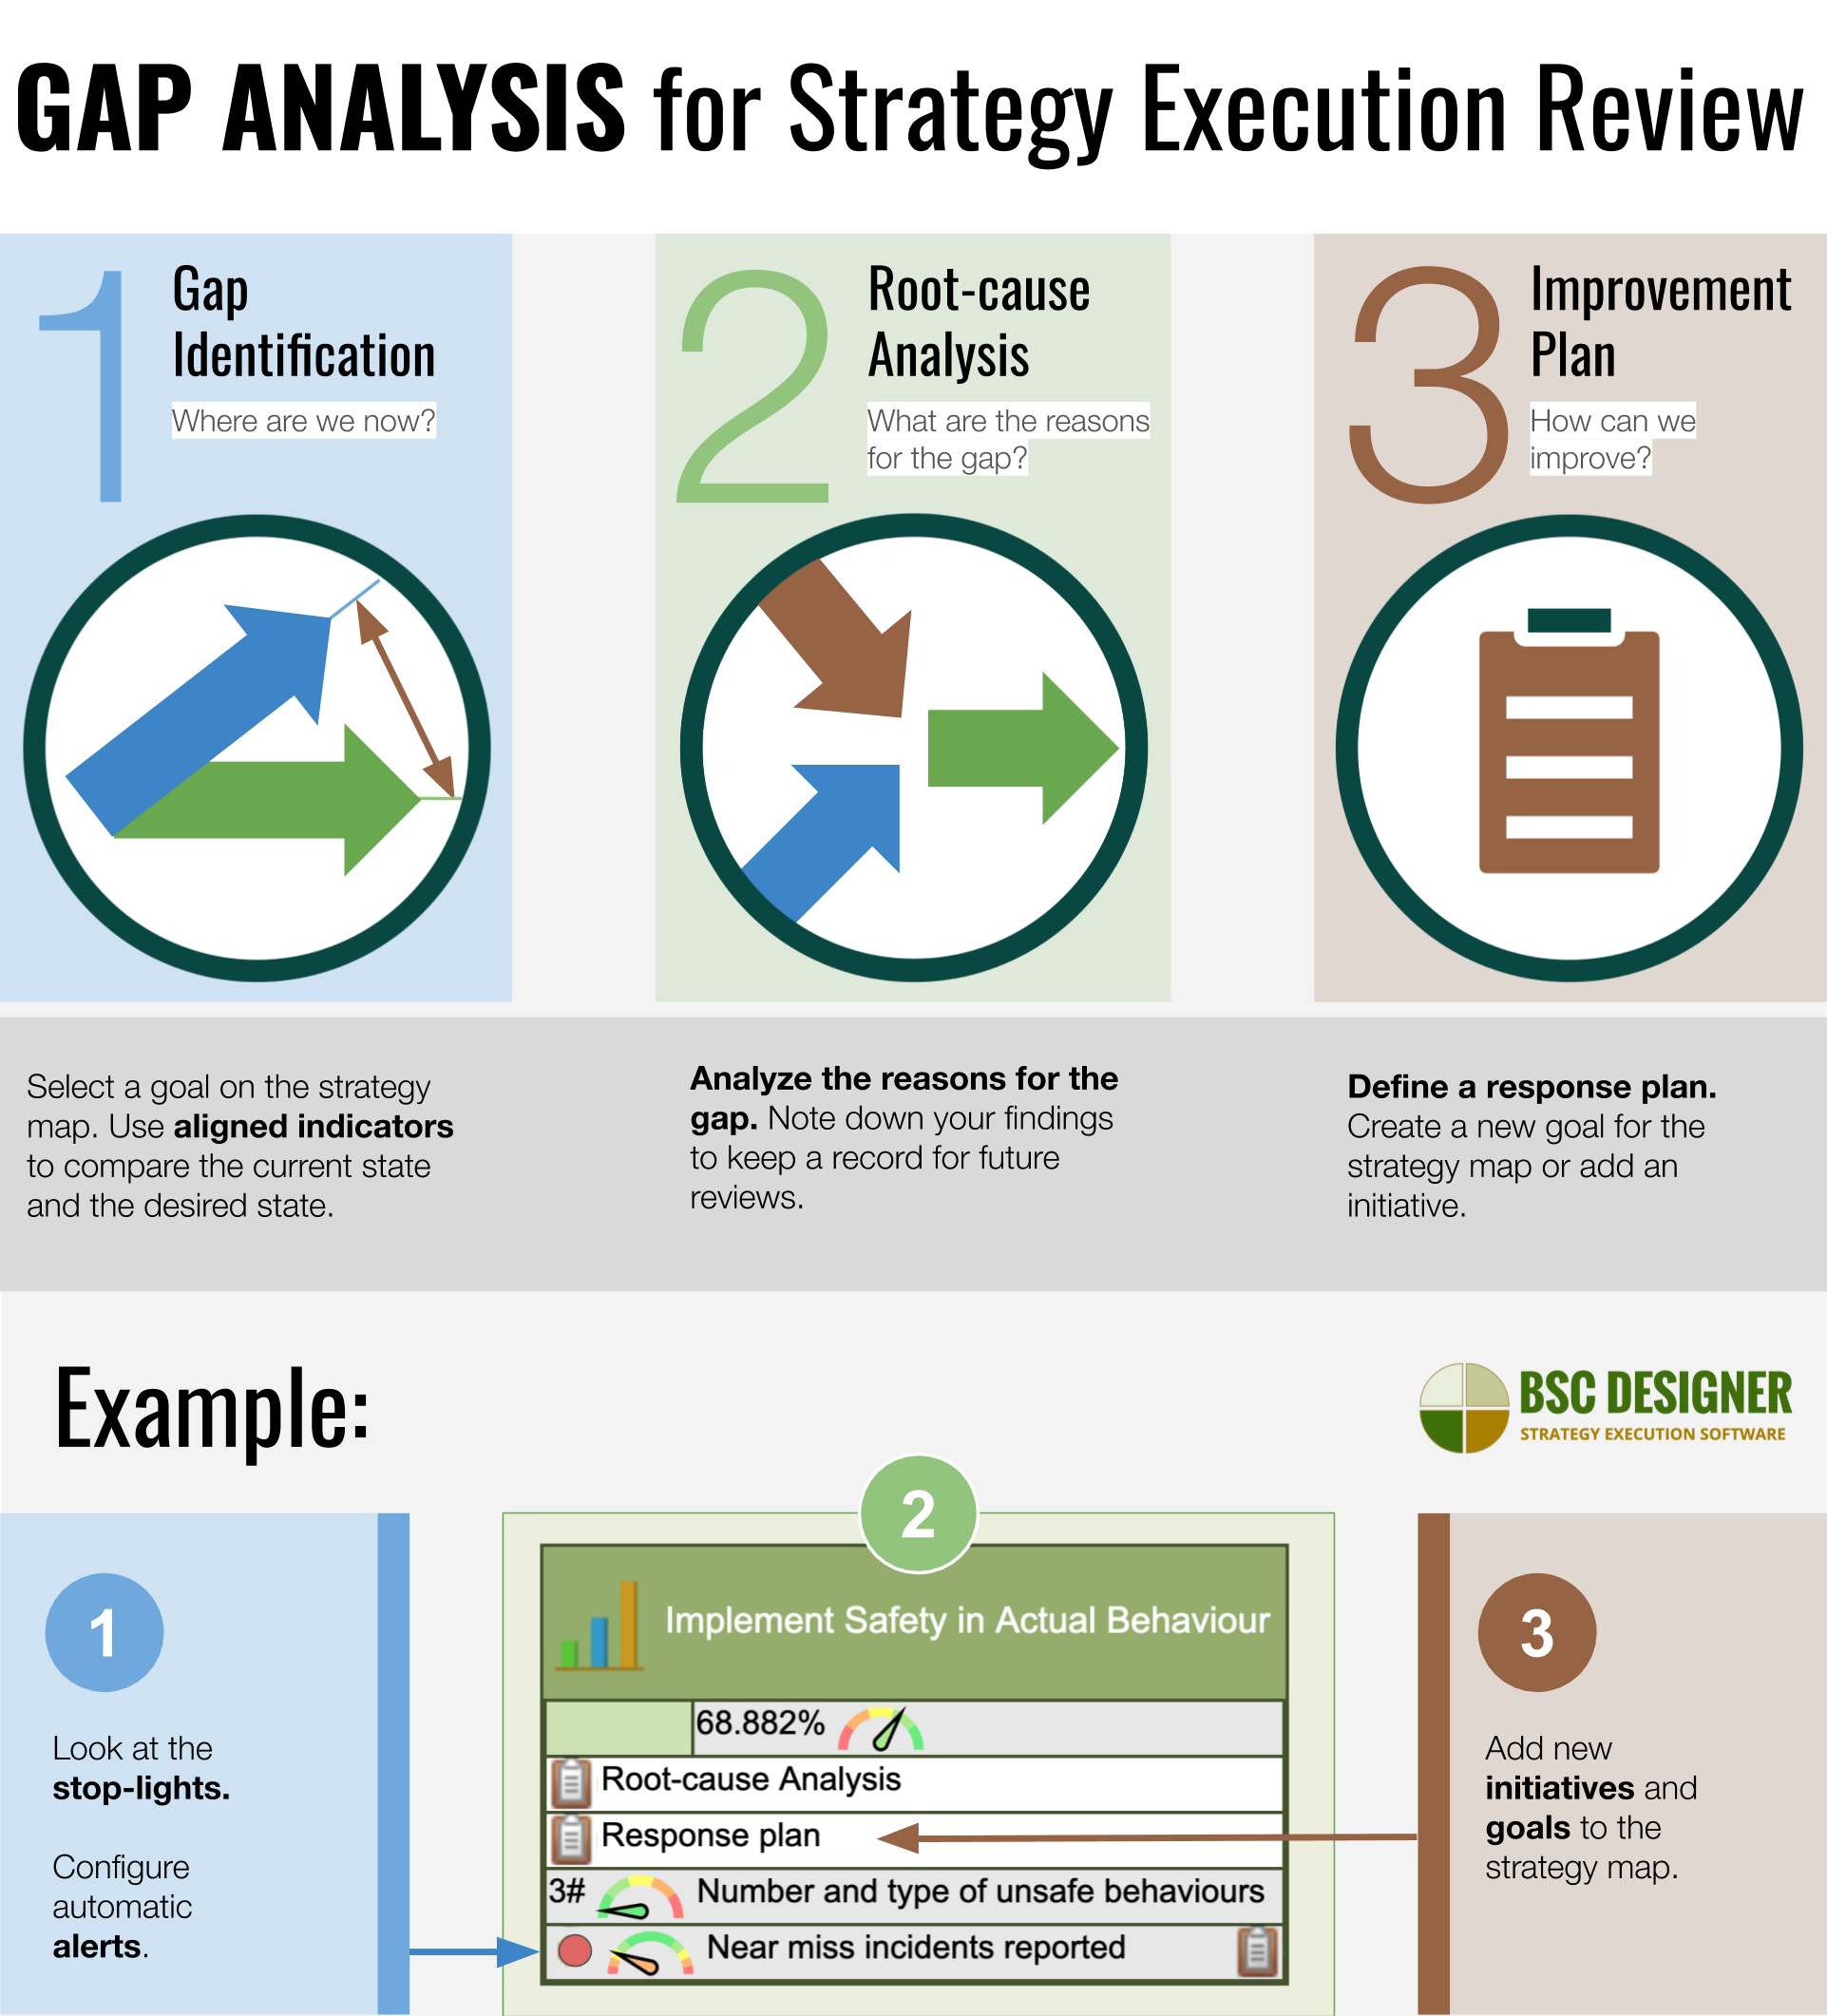 Gap analysis for strategy execution